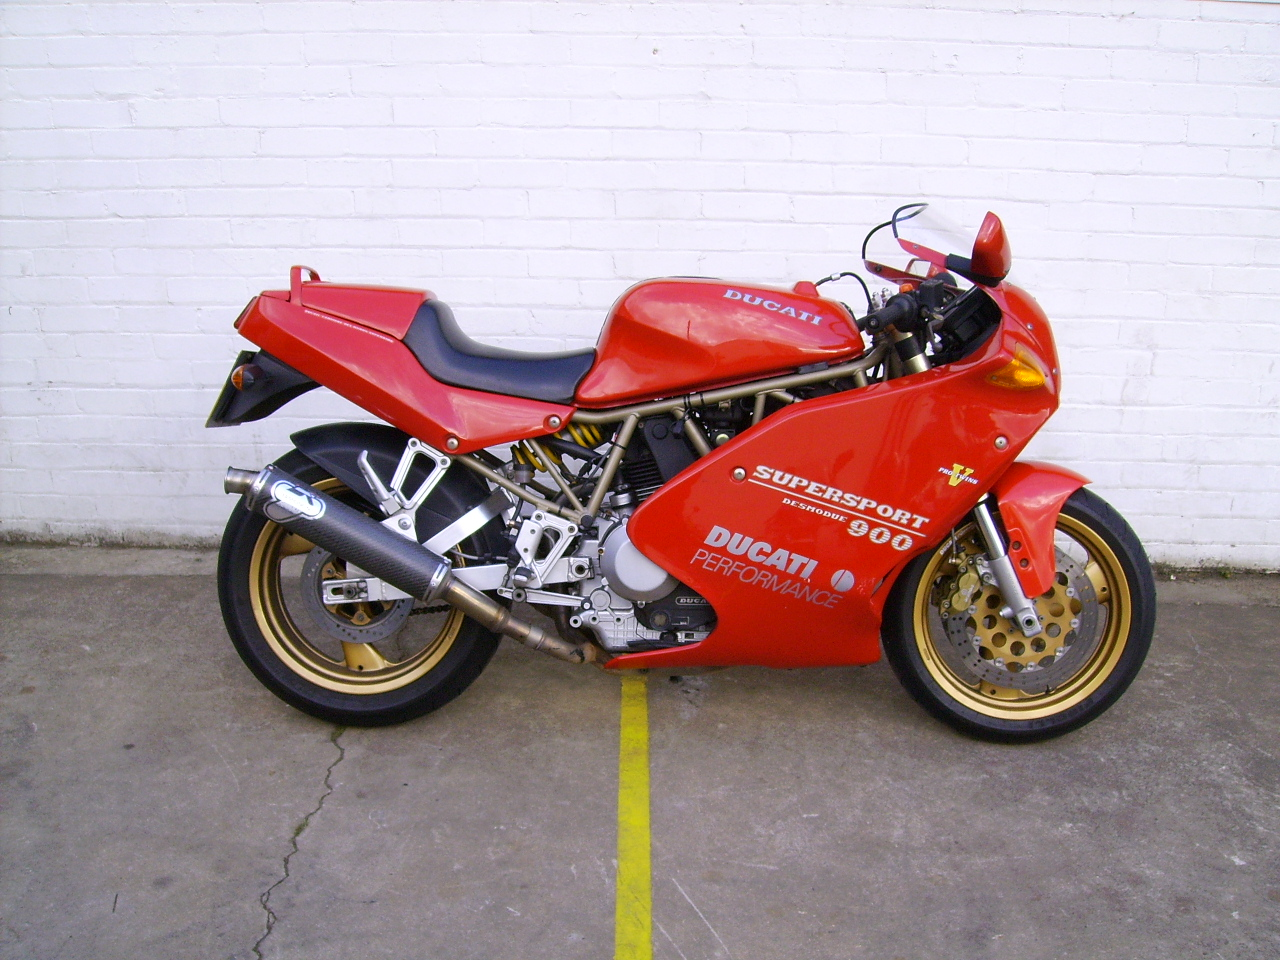 Ducati 900 SS 1994 images #78854